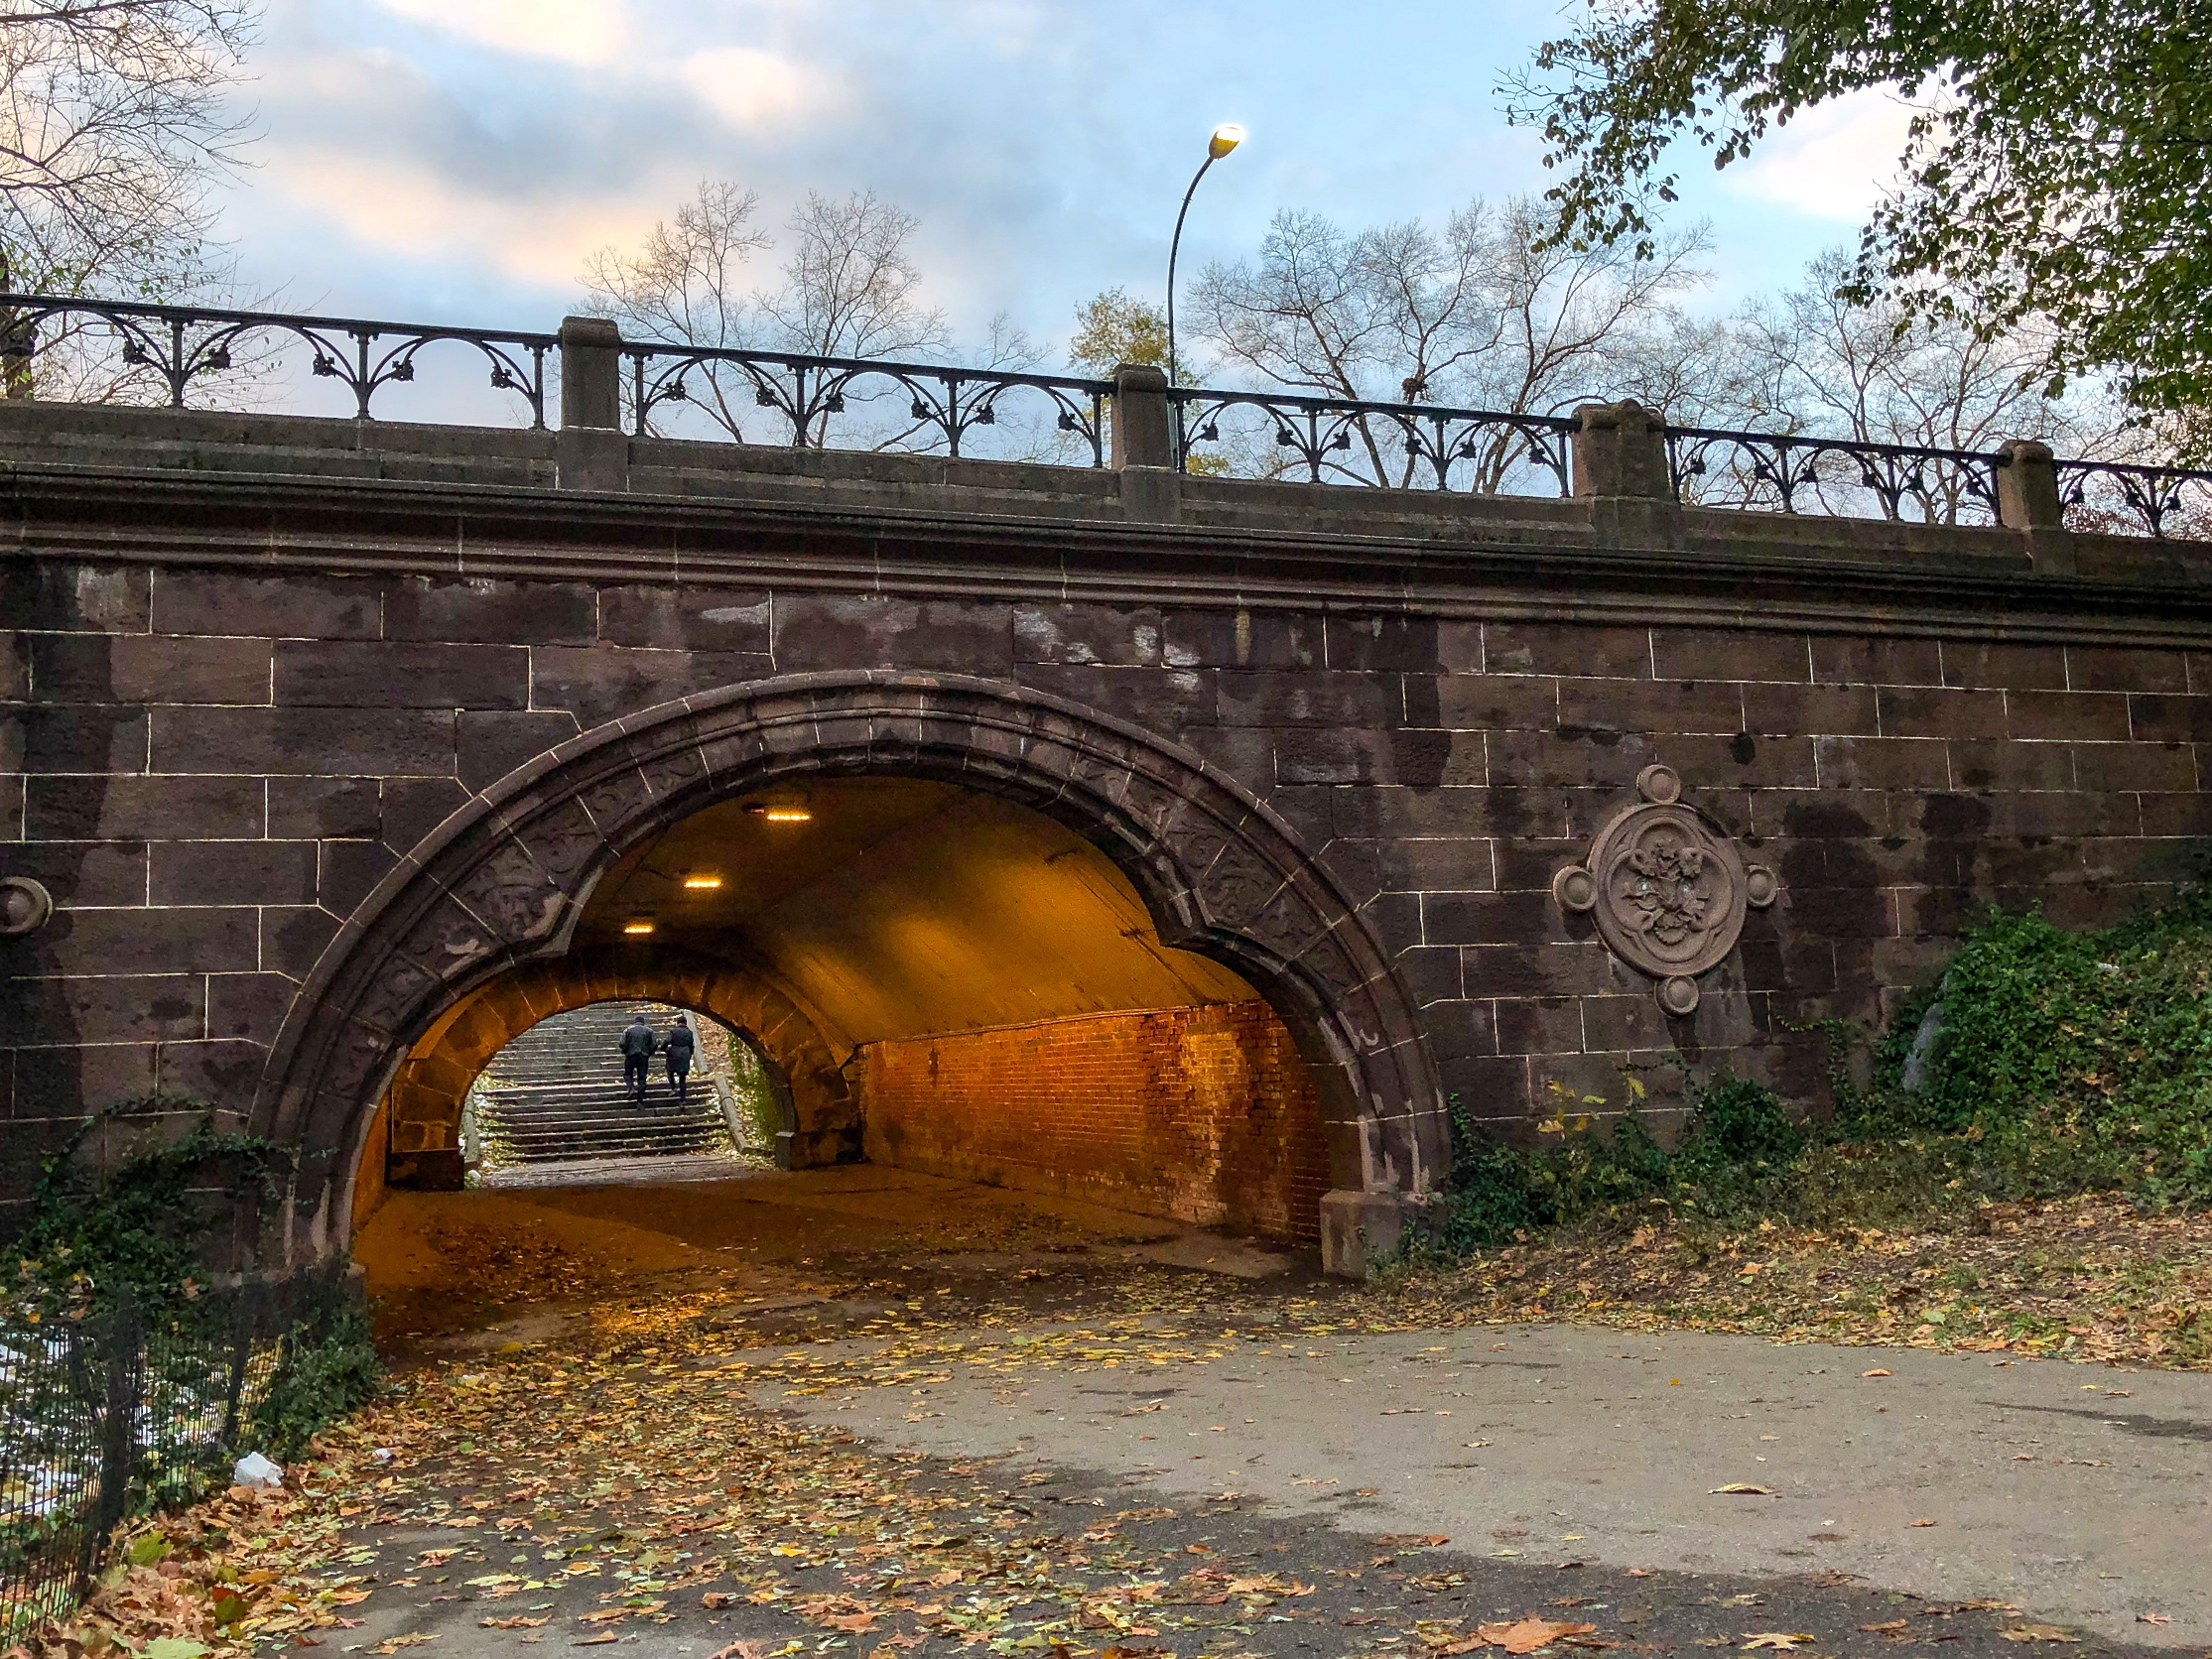 @ Trefoil Arch_autumn trees_Central Park.jpg